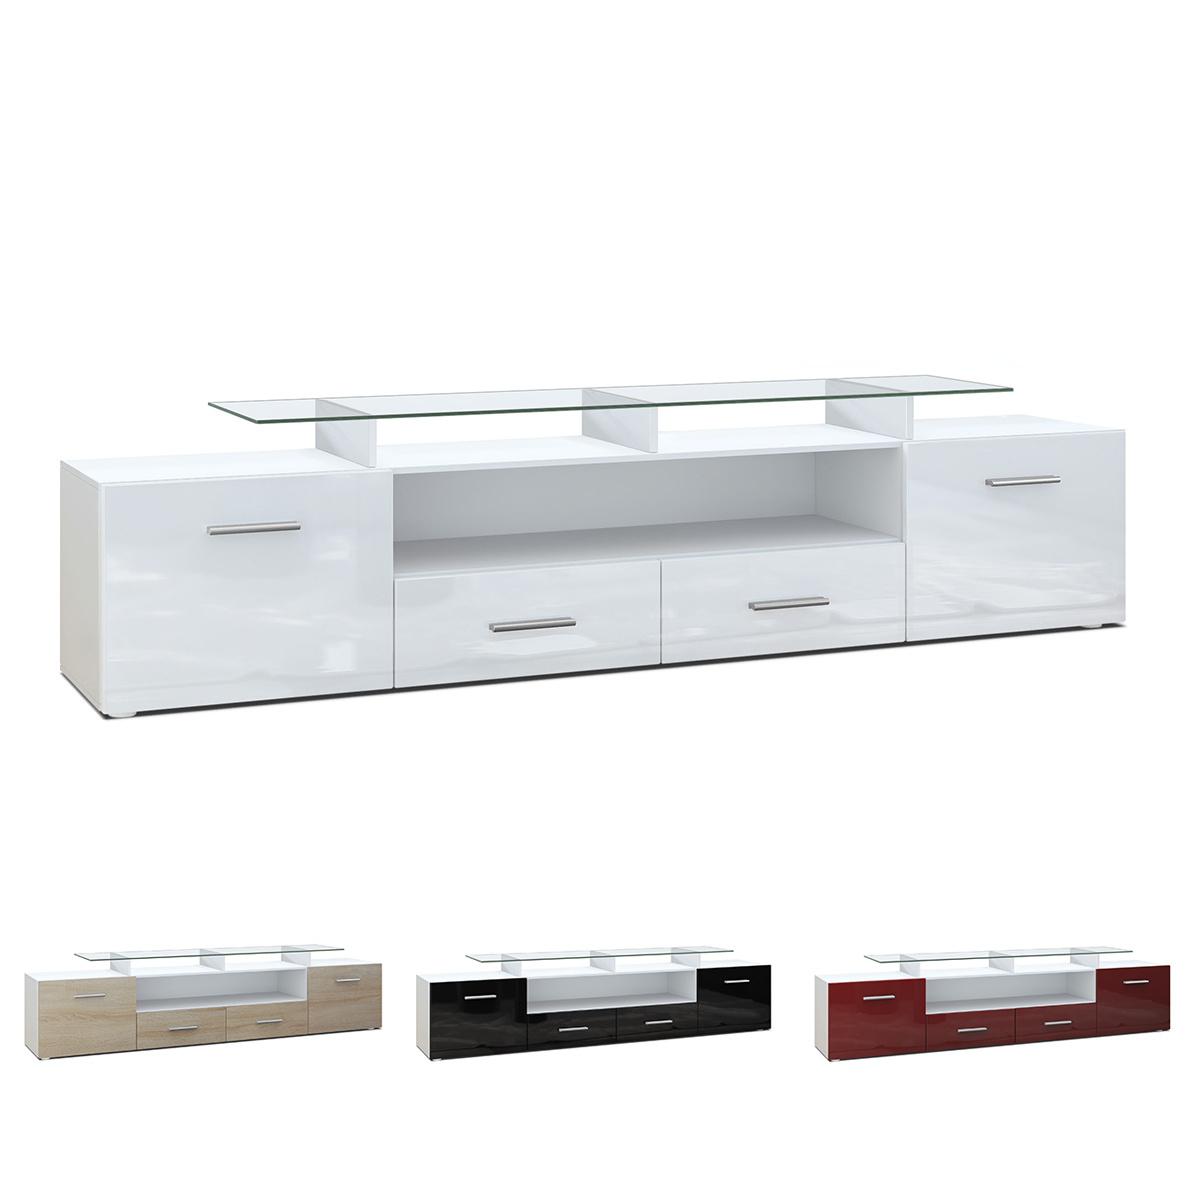 tv unit stand cabinet sideboard almada v2 white high gloss natural tones ebay. Black Bedroom Furniture Sets. Home Design Ideas